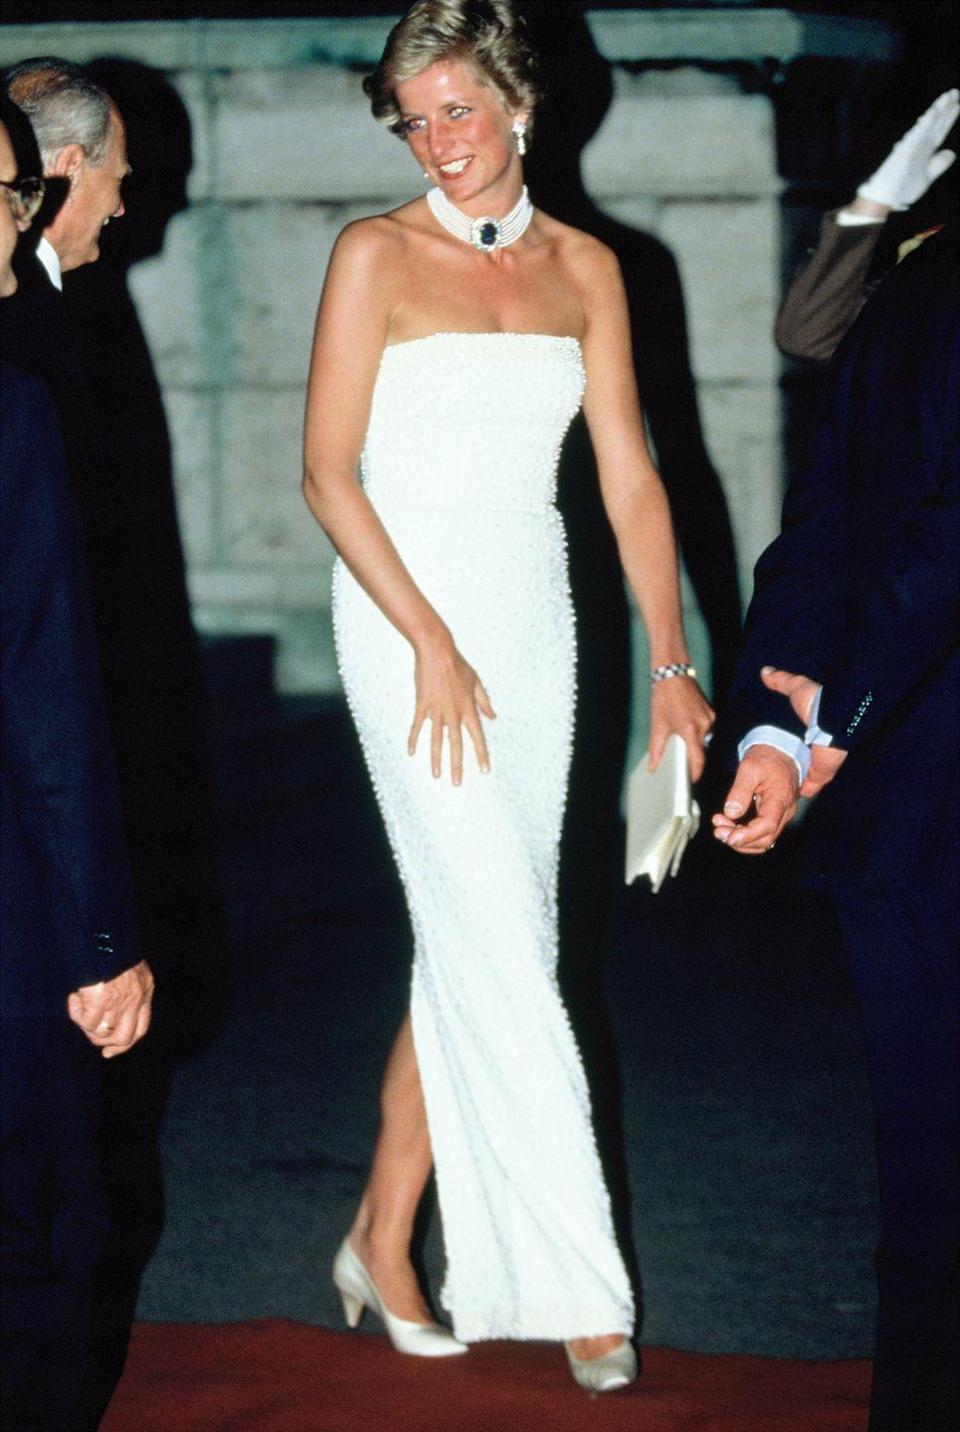 <p>The Princess wore a strapless white gown by Catherine Walker with statement jewelry while attending a state banquet during an official visit to Hungary. </p>